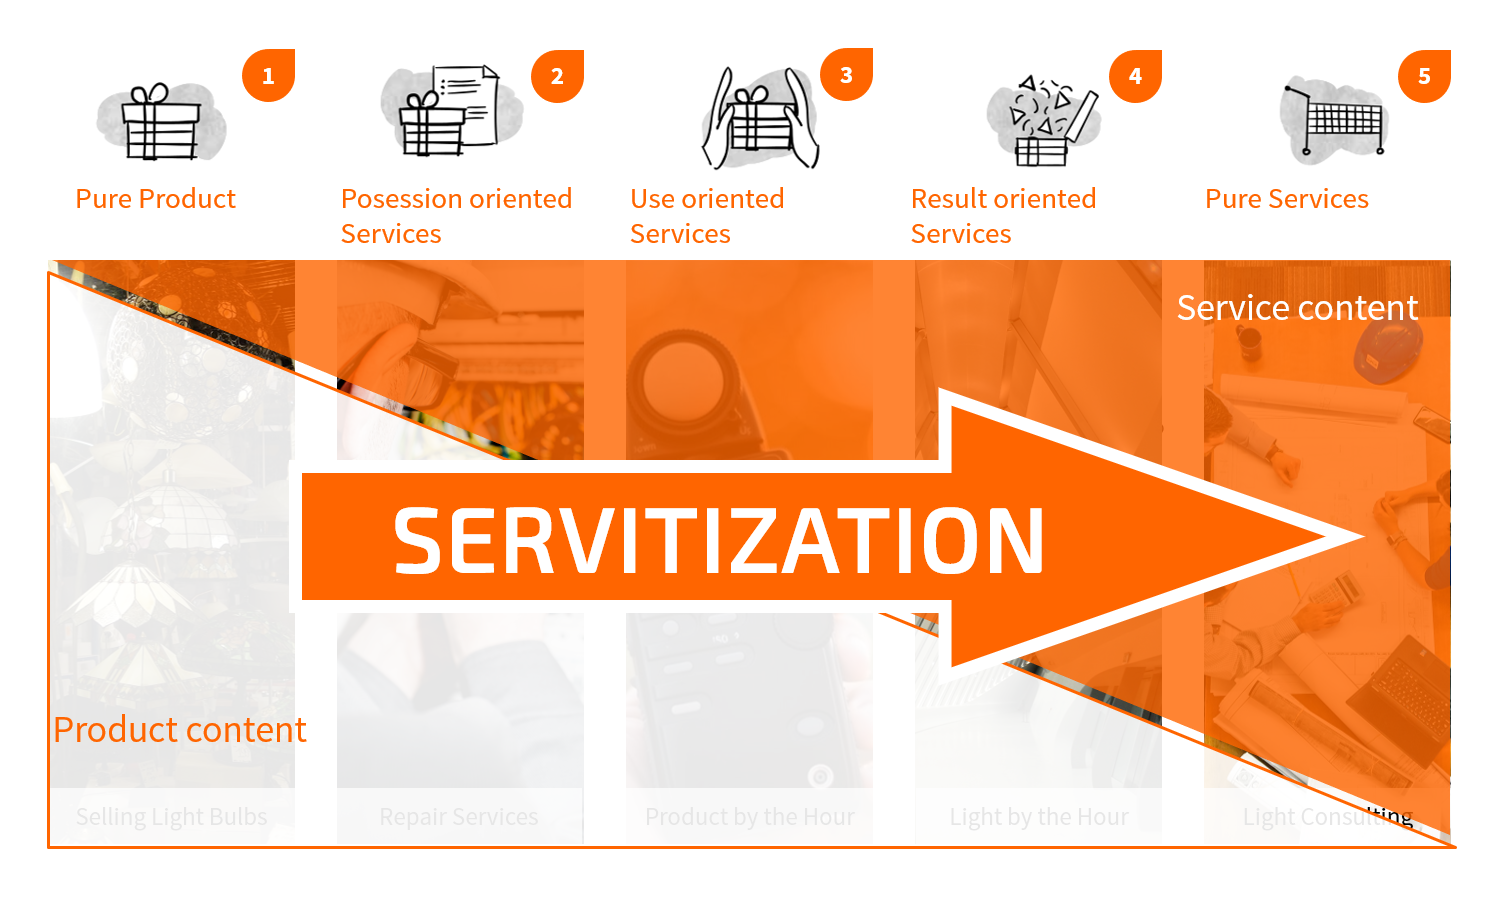 Servitization as a Business Model Innovation on 5 different levels - TOM SPIKE